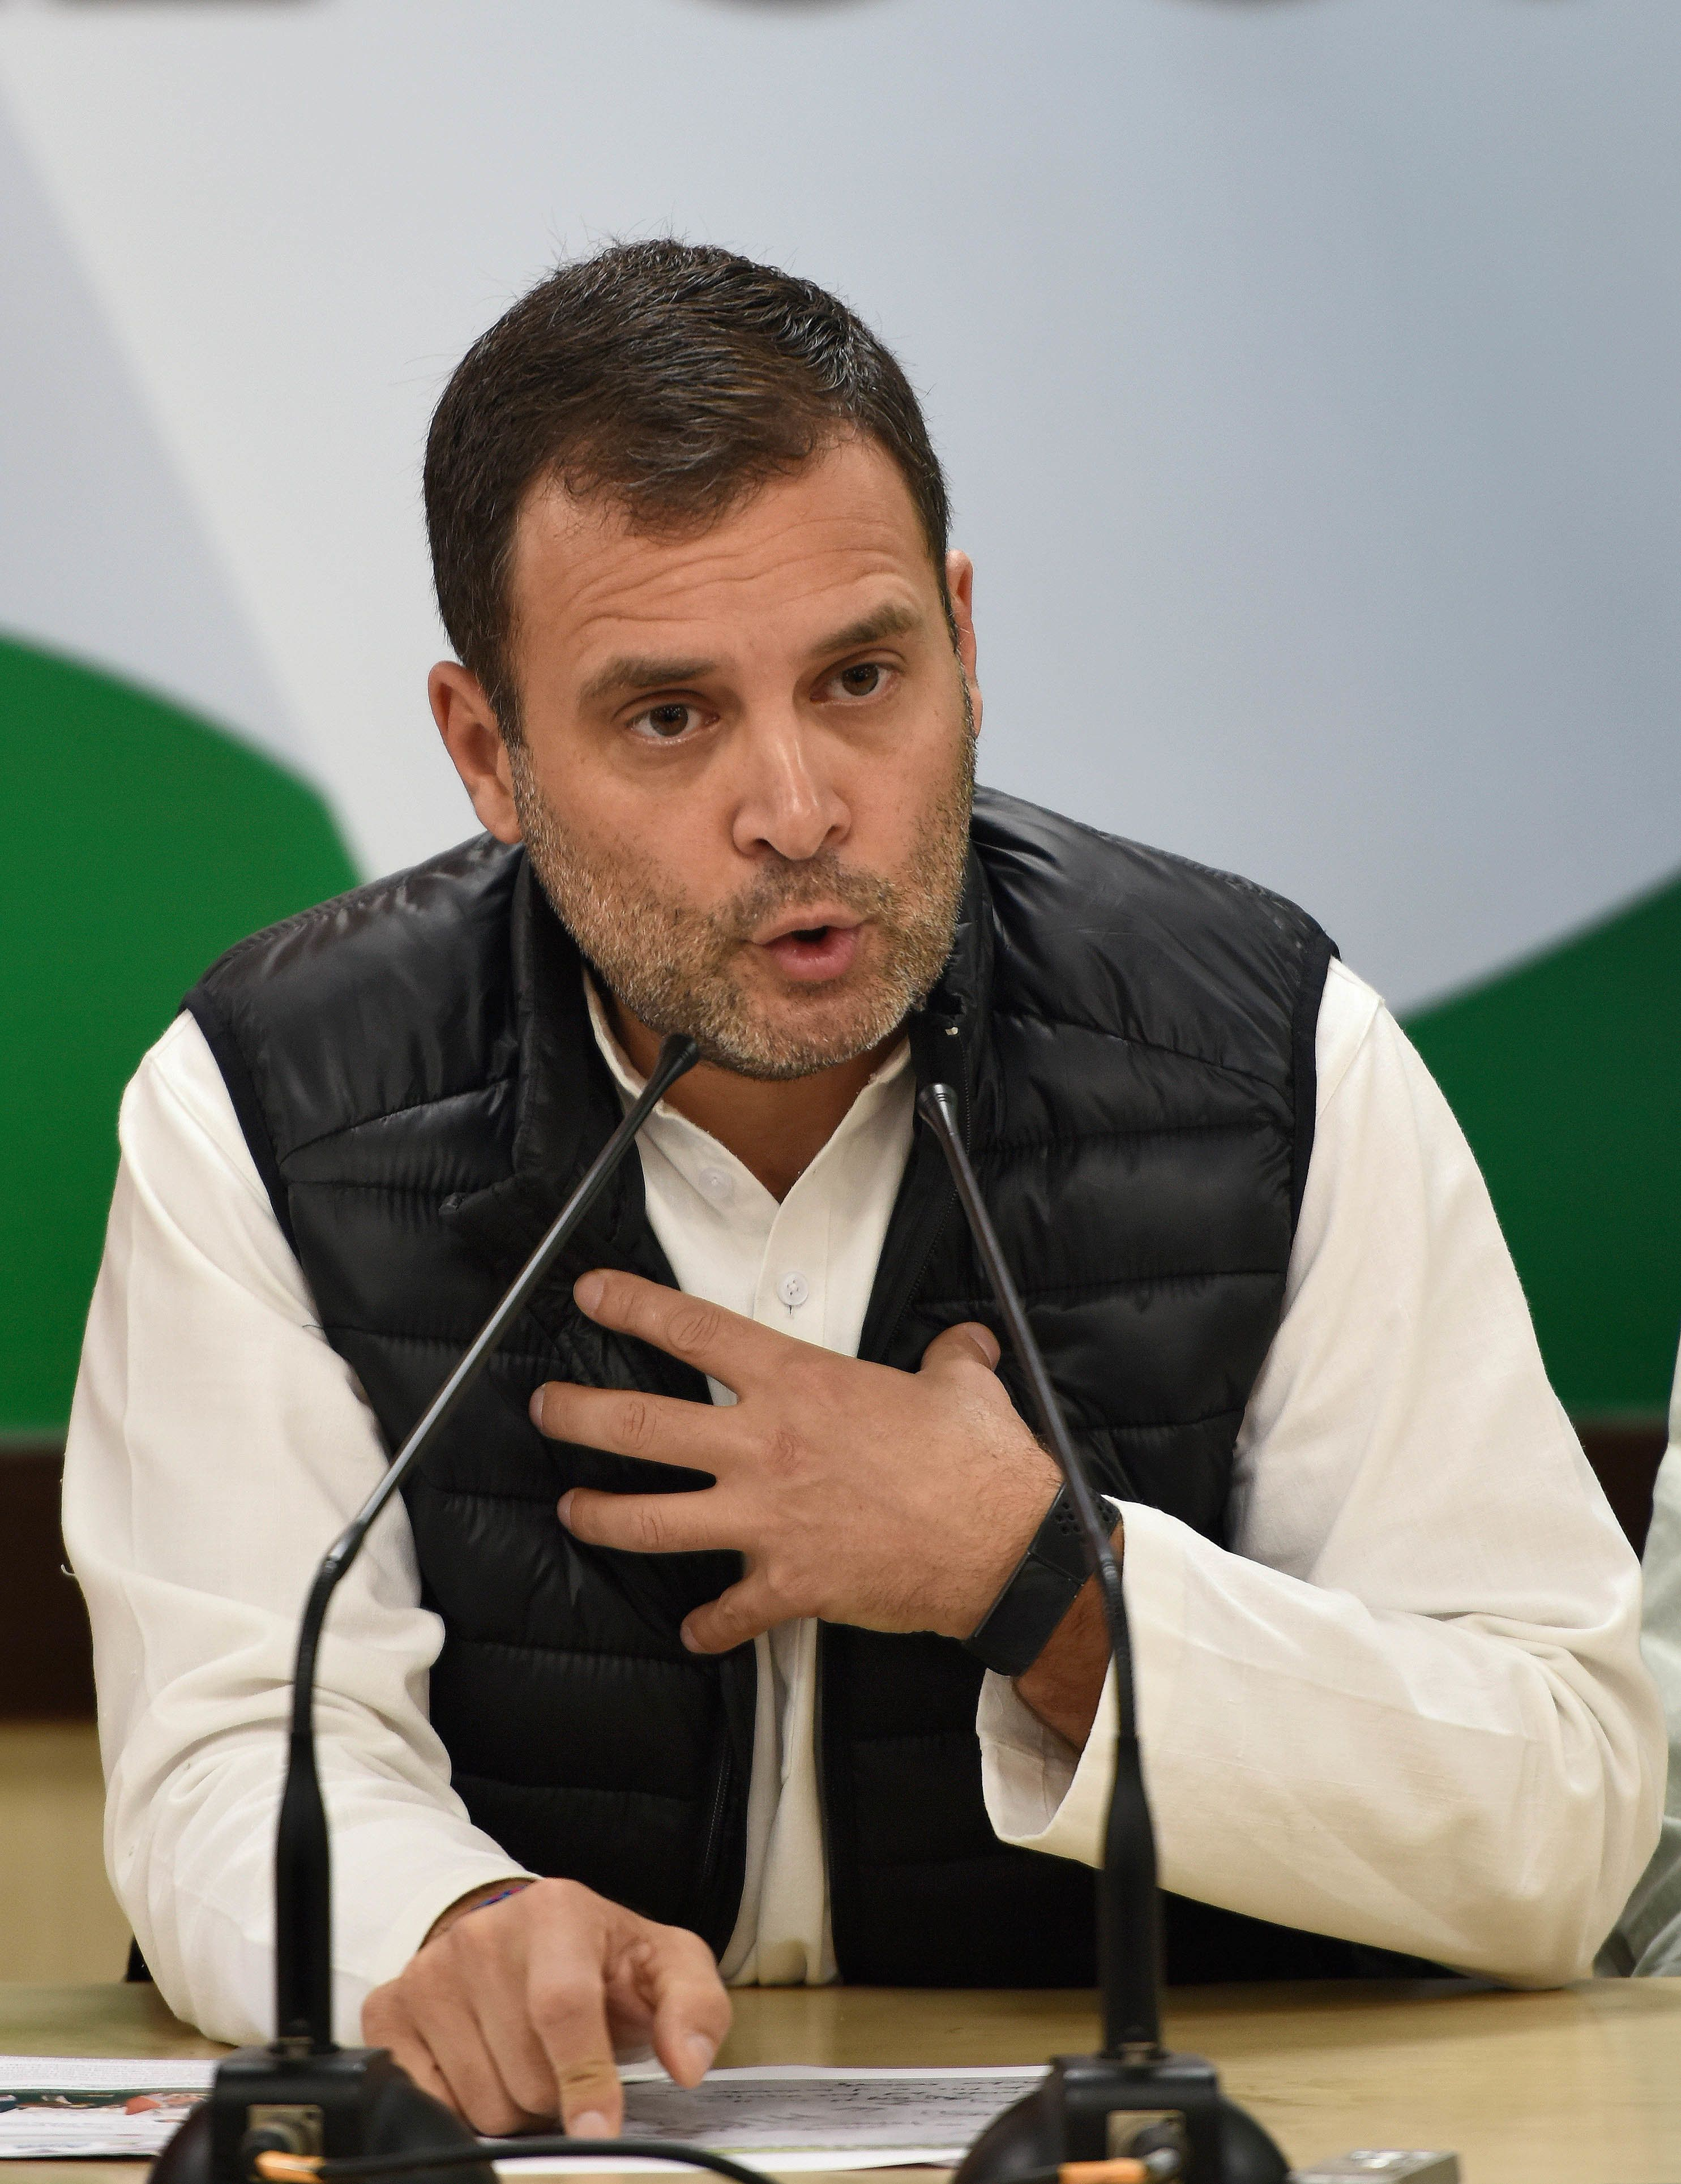 Rahul Gandhi Expresses Regret To SC Over 'Chowkidar Chor Hai'